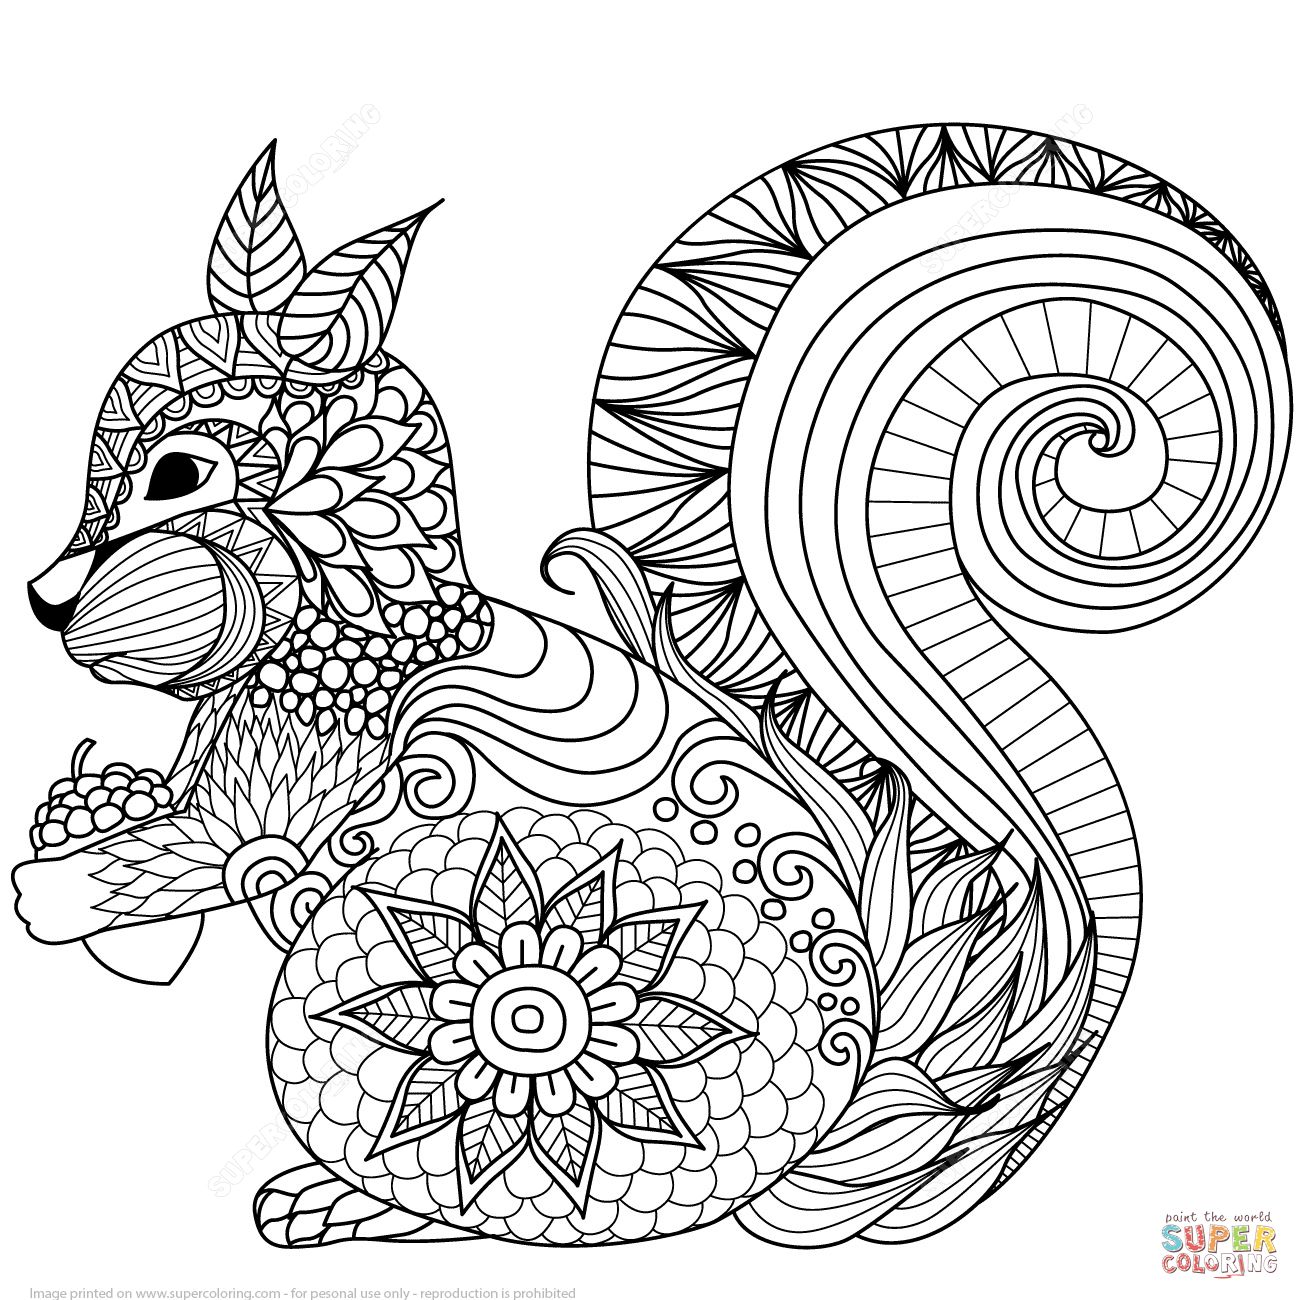 hübsches Eichhörnchen Zentangle | Super Coloring | DIY | Pinterest ...